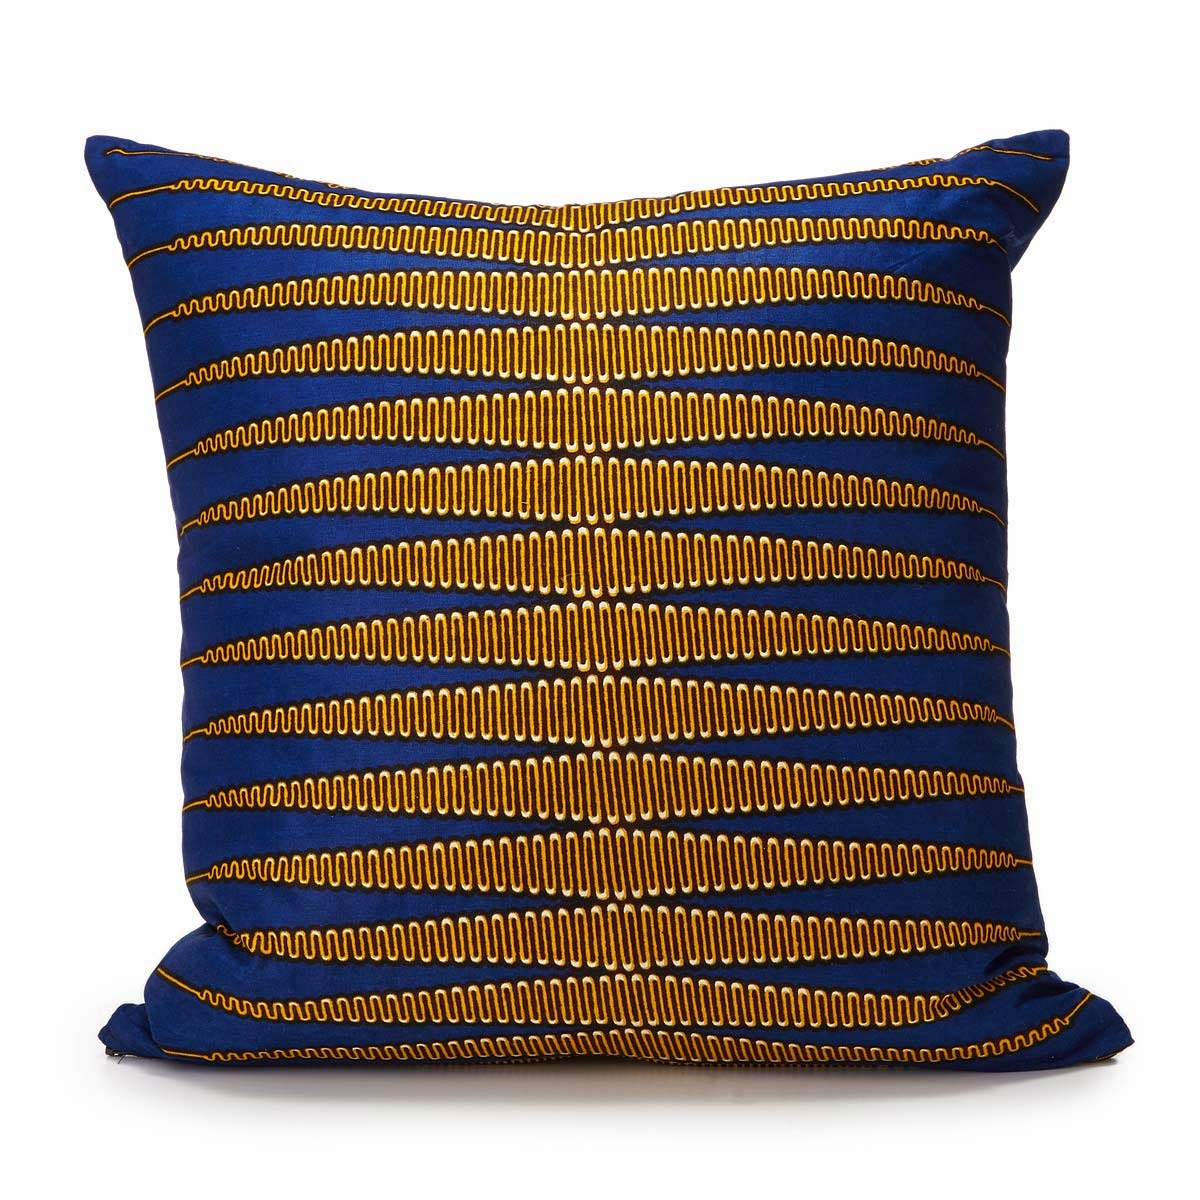 http://www.uncommongoods.com/product/handmade-african-wax-print-pillow